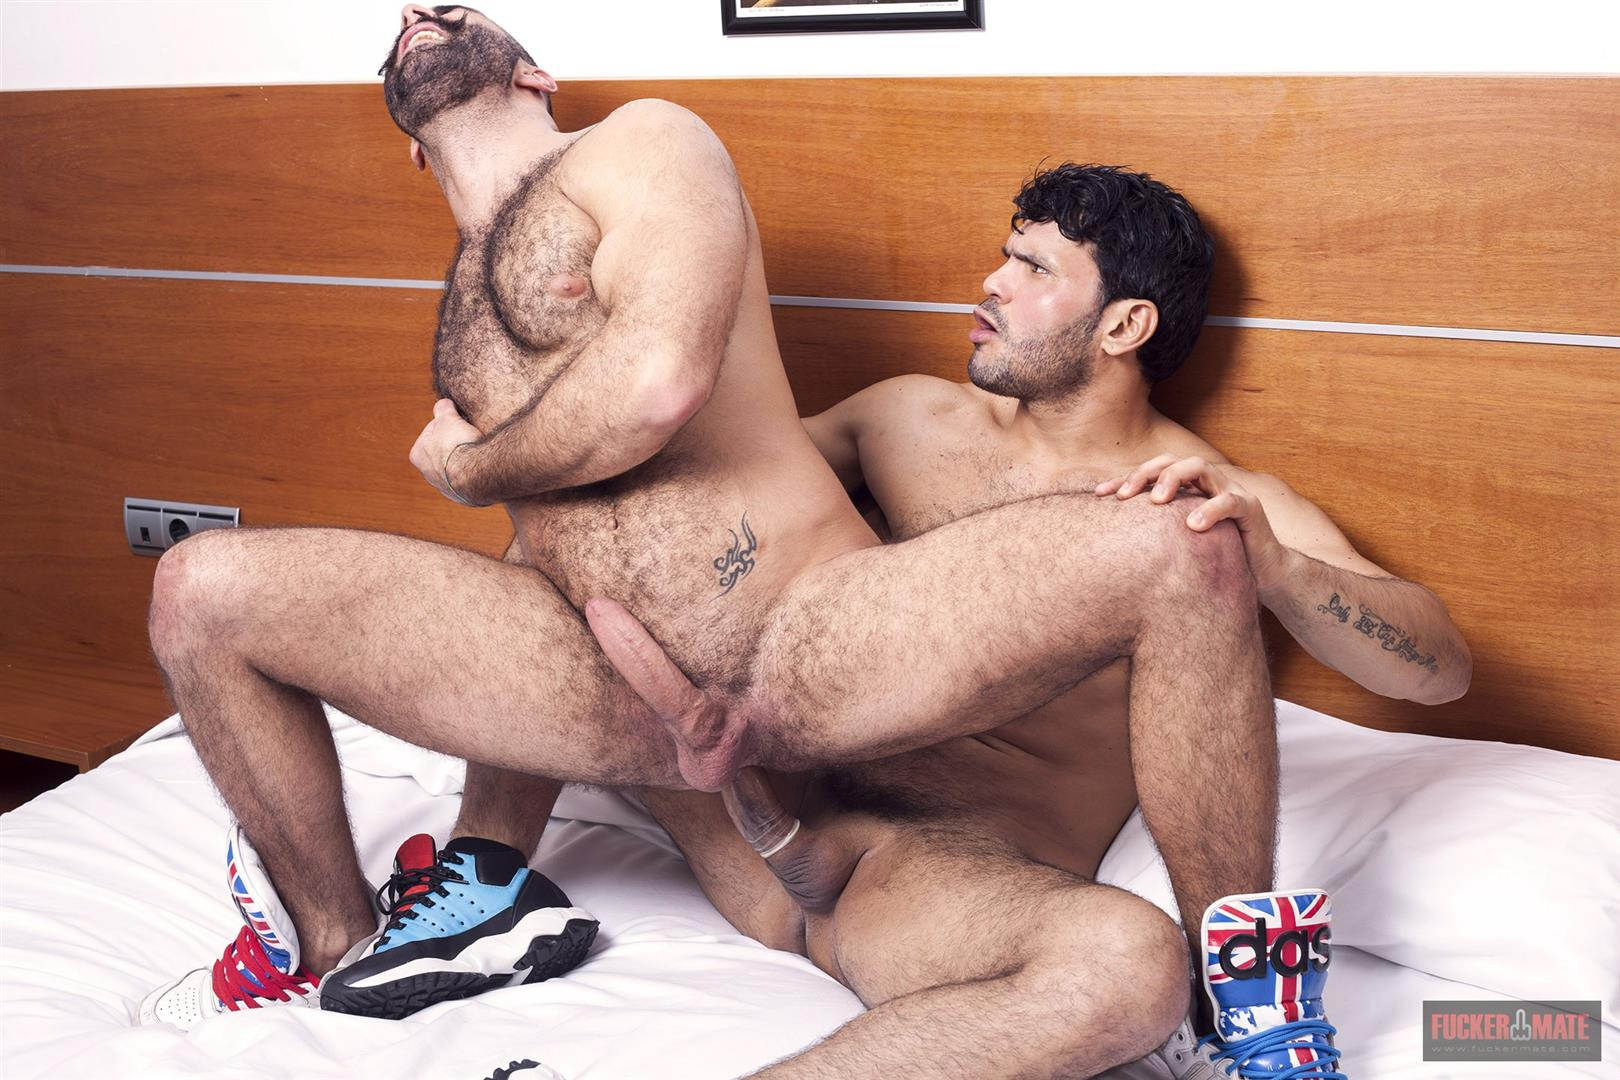 Fuckermate-Jean-Frank-and-Paco-Hairy-Muscle-Hunks-With-Big-Uncut-Cocks-Fucking-Amateur-Gay-Porn-14 Hairy Muscle Italian Hunks With Big Uncut Cocks Fucking Rough